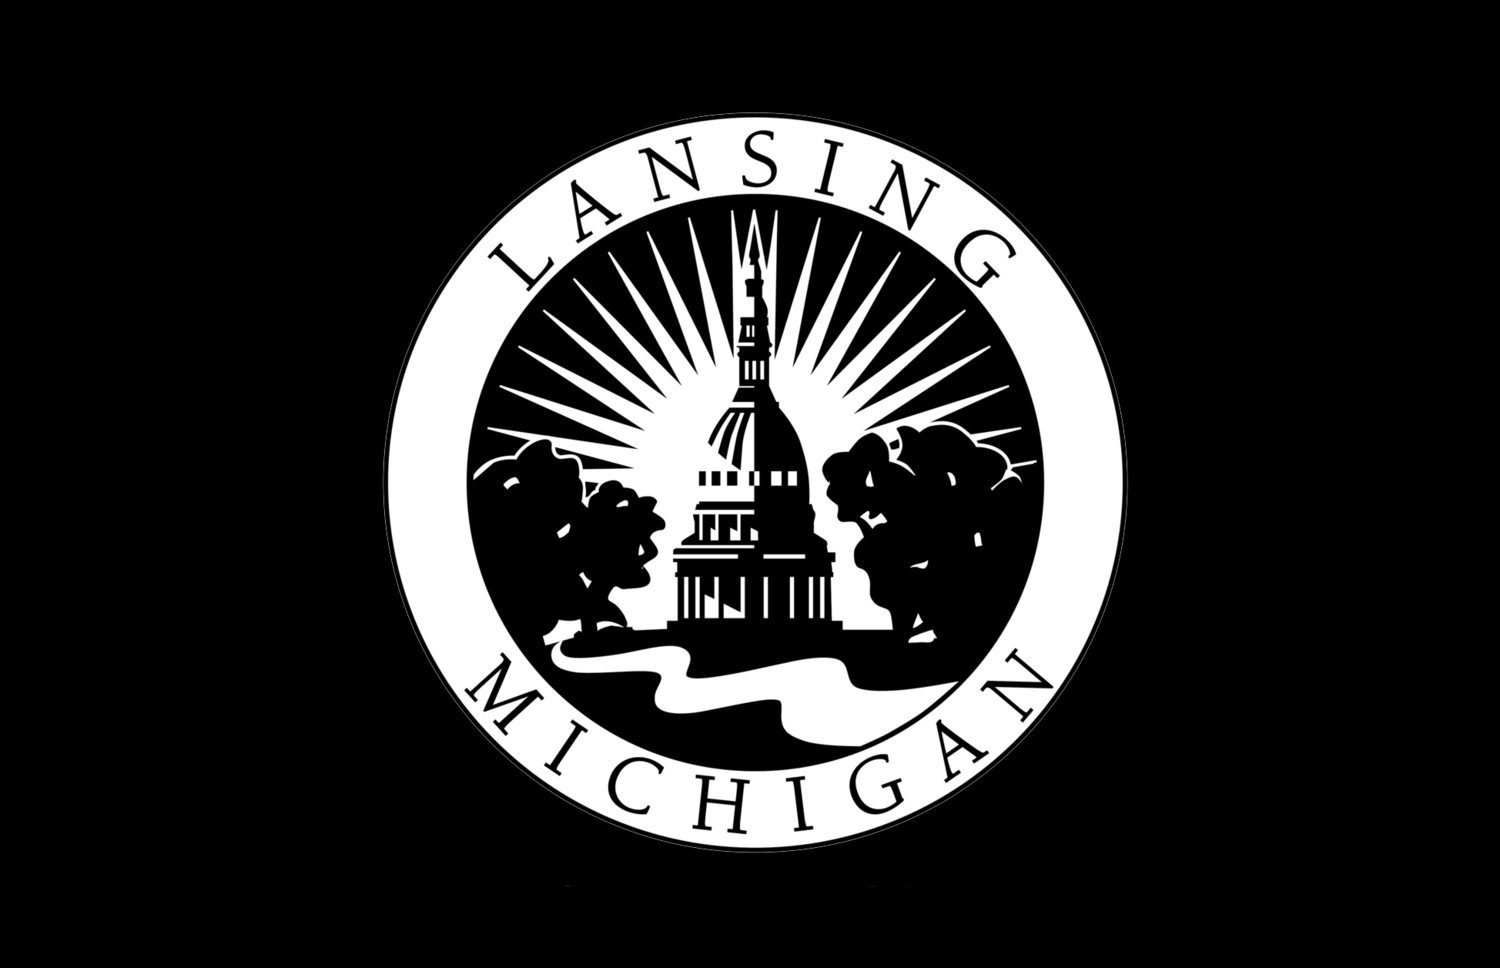 Lansing City Council members are exploring the creation of a new full-time position that would focus on long-term finances for the city.